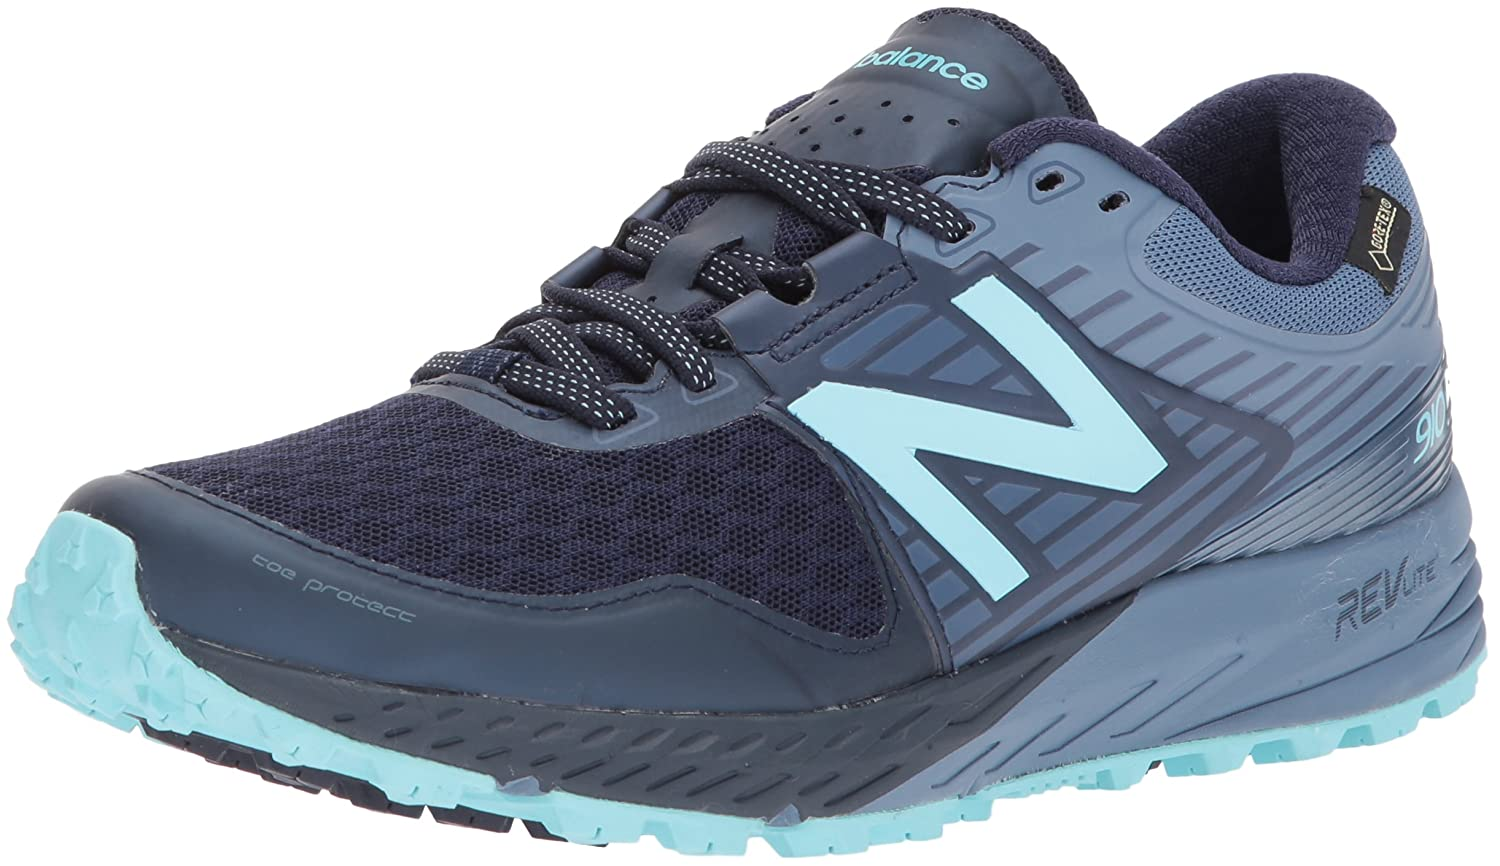 New Balance Women's 910v4 Gore-Tex Running Shoe B01NBA2QTM 10 B(M) US|Pigment/Porcelain Blue